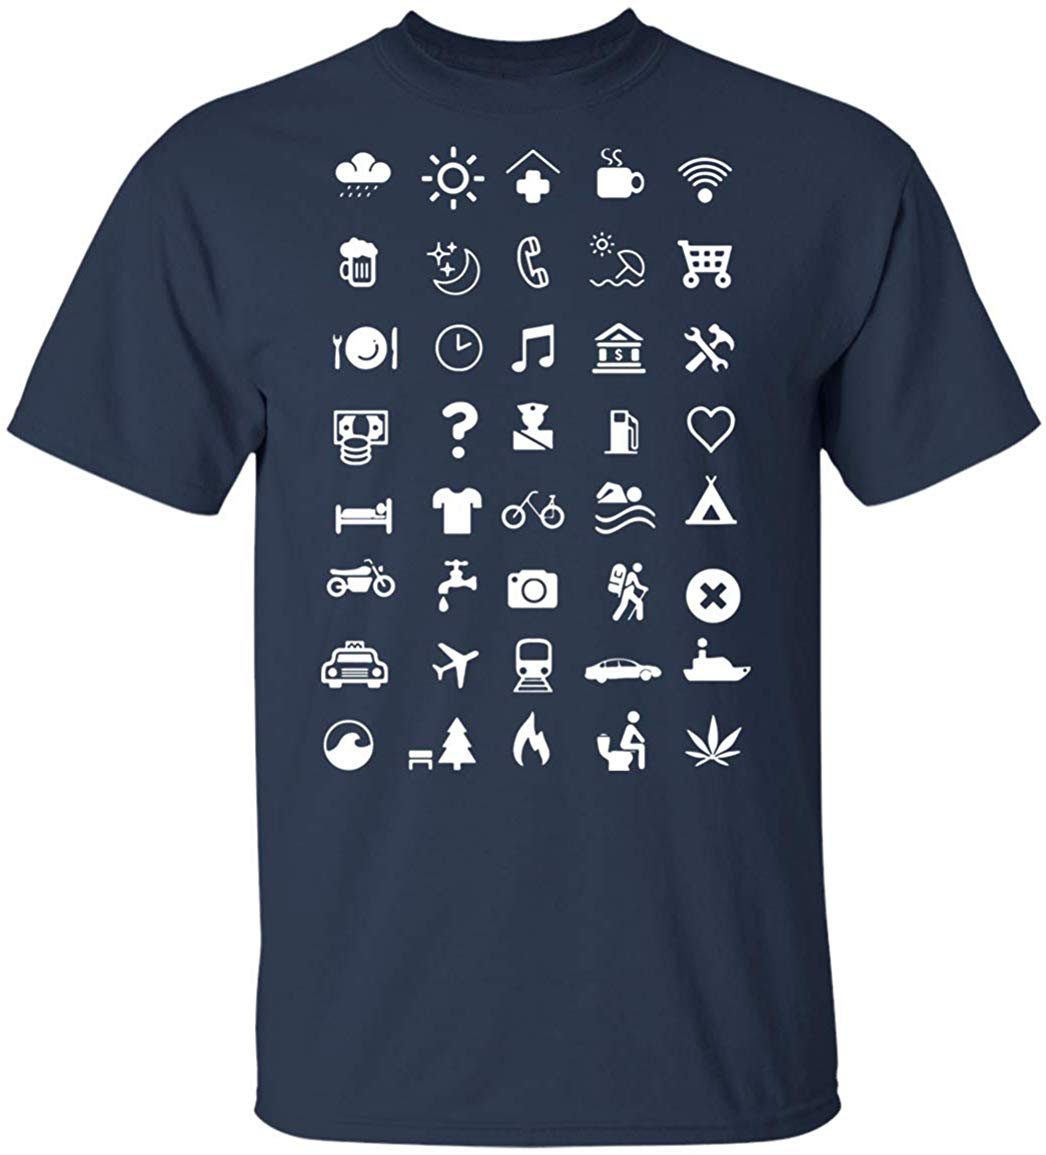 Travel Icon T Shirt, Backpacking Holiday Iconspeak Travelling Gift TEE Shirt High Quality